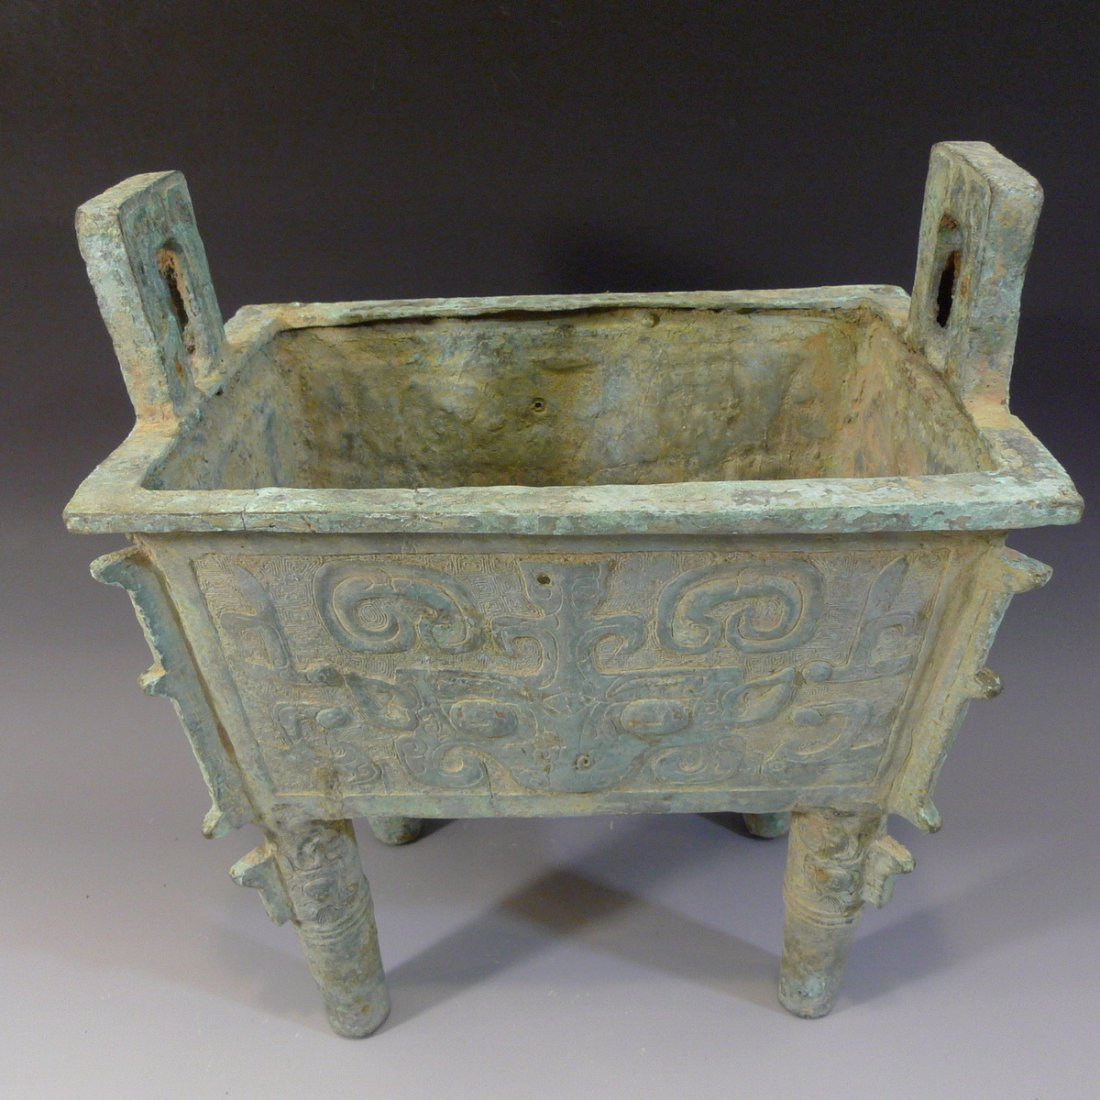 CHINESE ARCHAISTIC BRONZE DING SHANG STYLE - 2